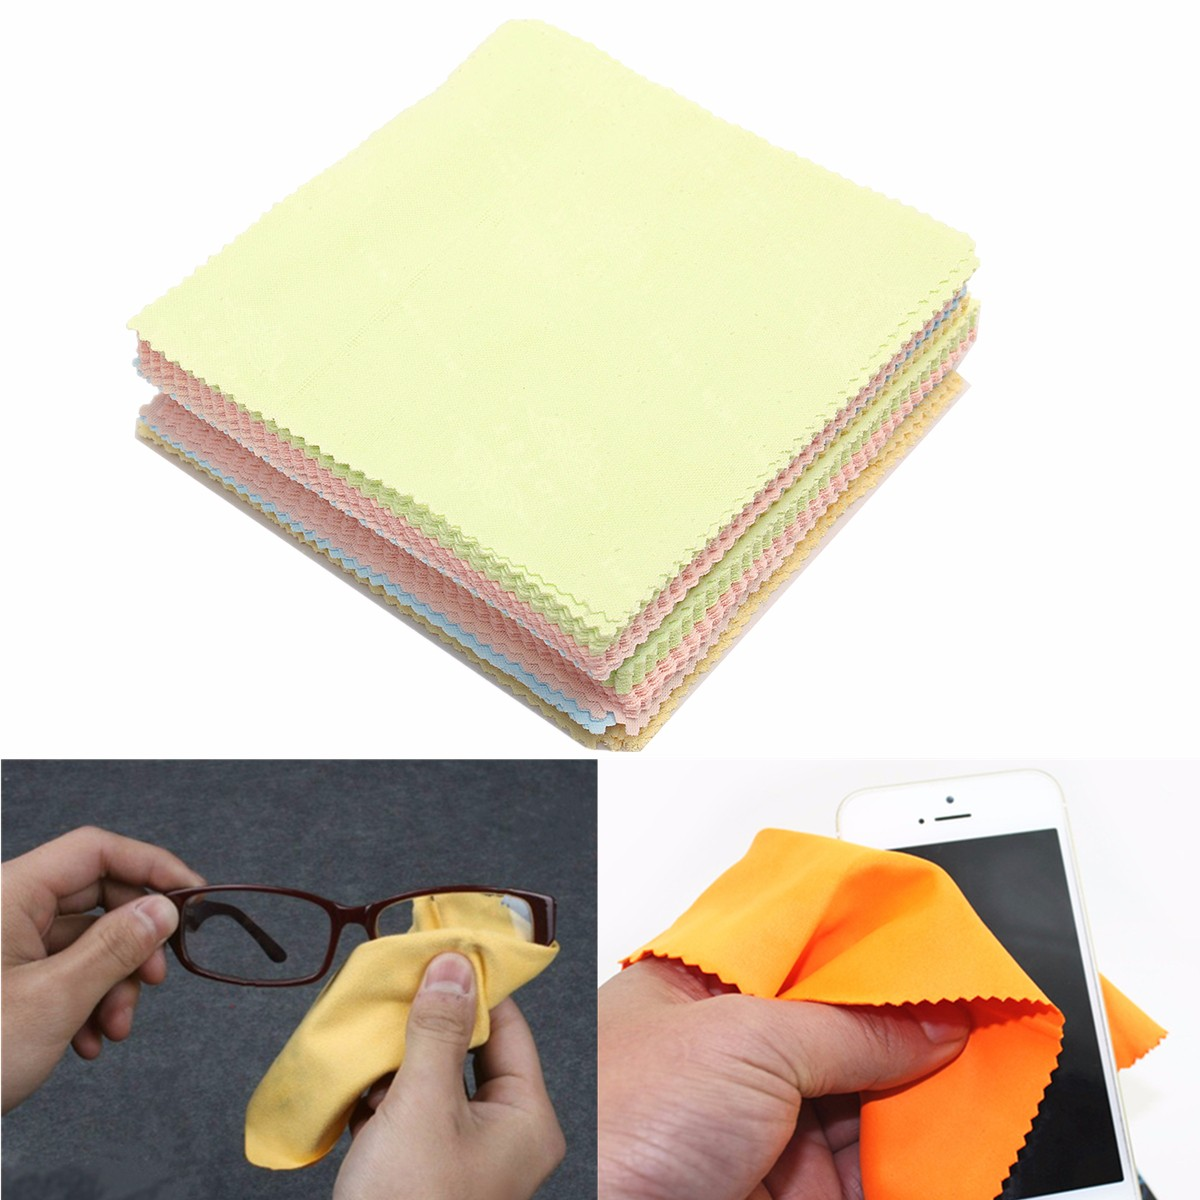 80Pcs Mixed Color Wipe Fiber Cleaning Cloth Polishing Eyeglasses Camera Phone Computer Screen Stains